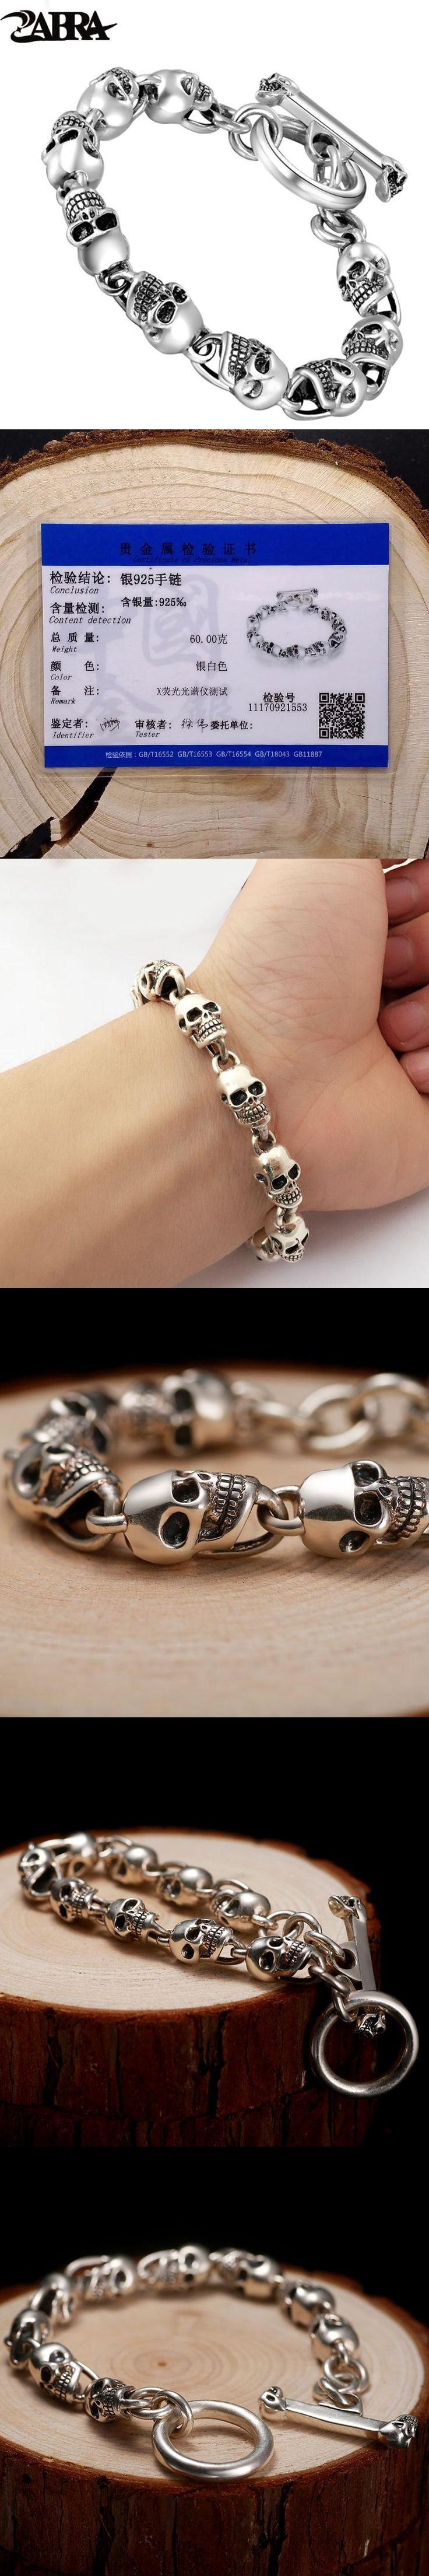 best 25+ skull bracelet ideas on pinterest | diy friendship